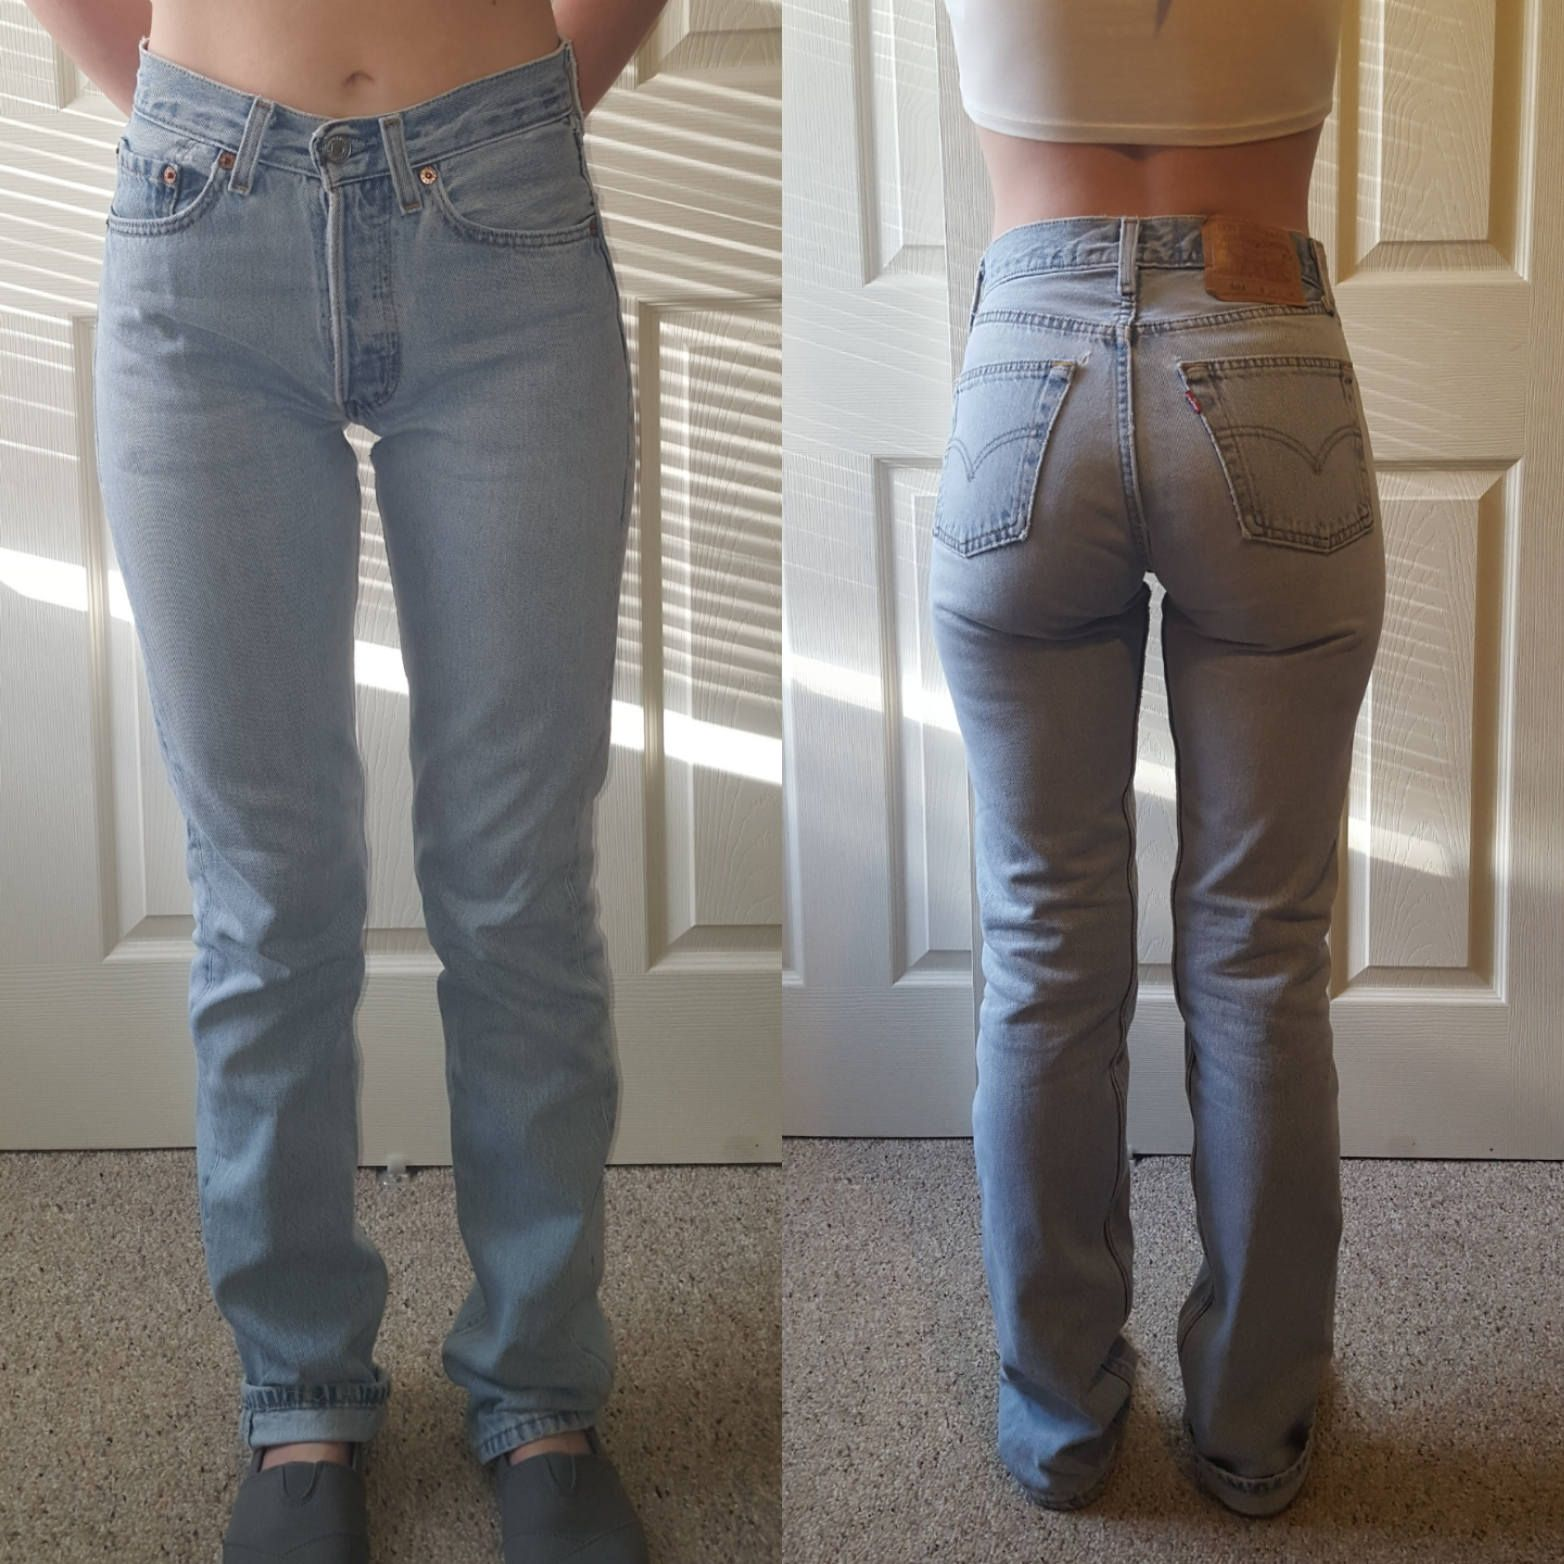 Designed Jeans For Women Skinny Jeans Straight Leg Jeans Nike Taped Pants Petite Ankle Grazer Trousers Swim Skirts With Shorts Joggers Nike